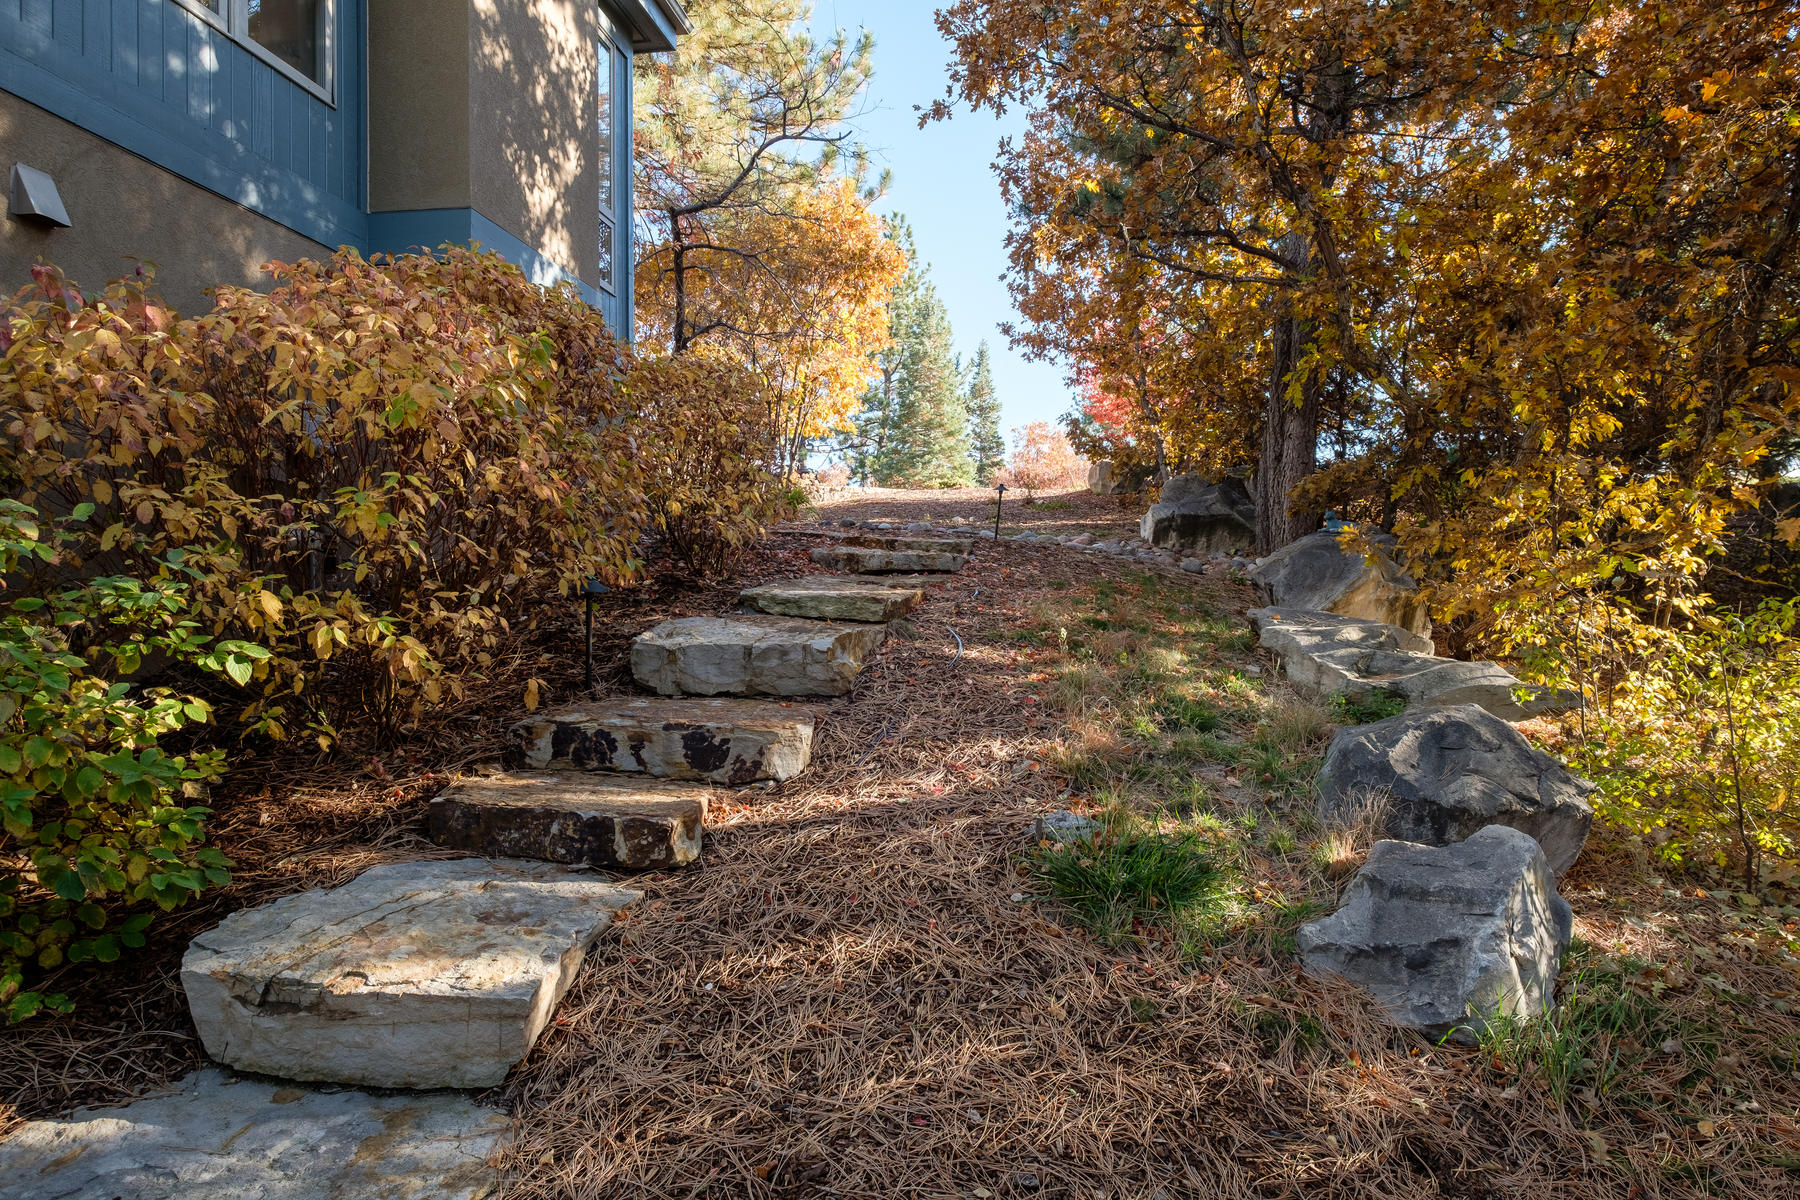 Additional photo for property listing at 167 Glengarry Pl 167 Glengarry Pl Castle Rock, Colorado 80108 United States